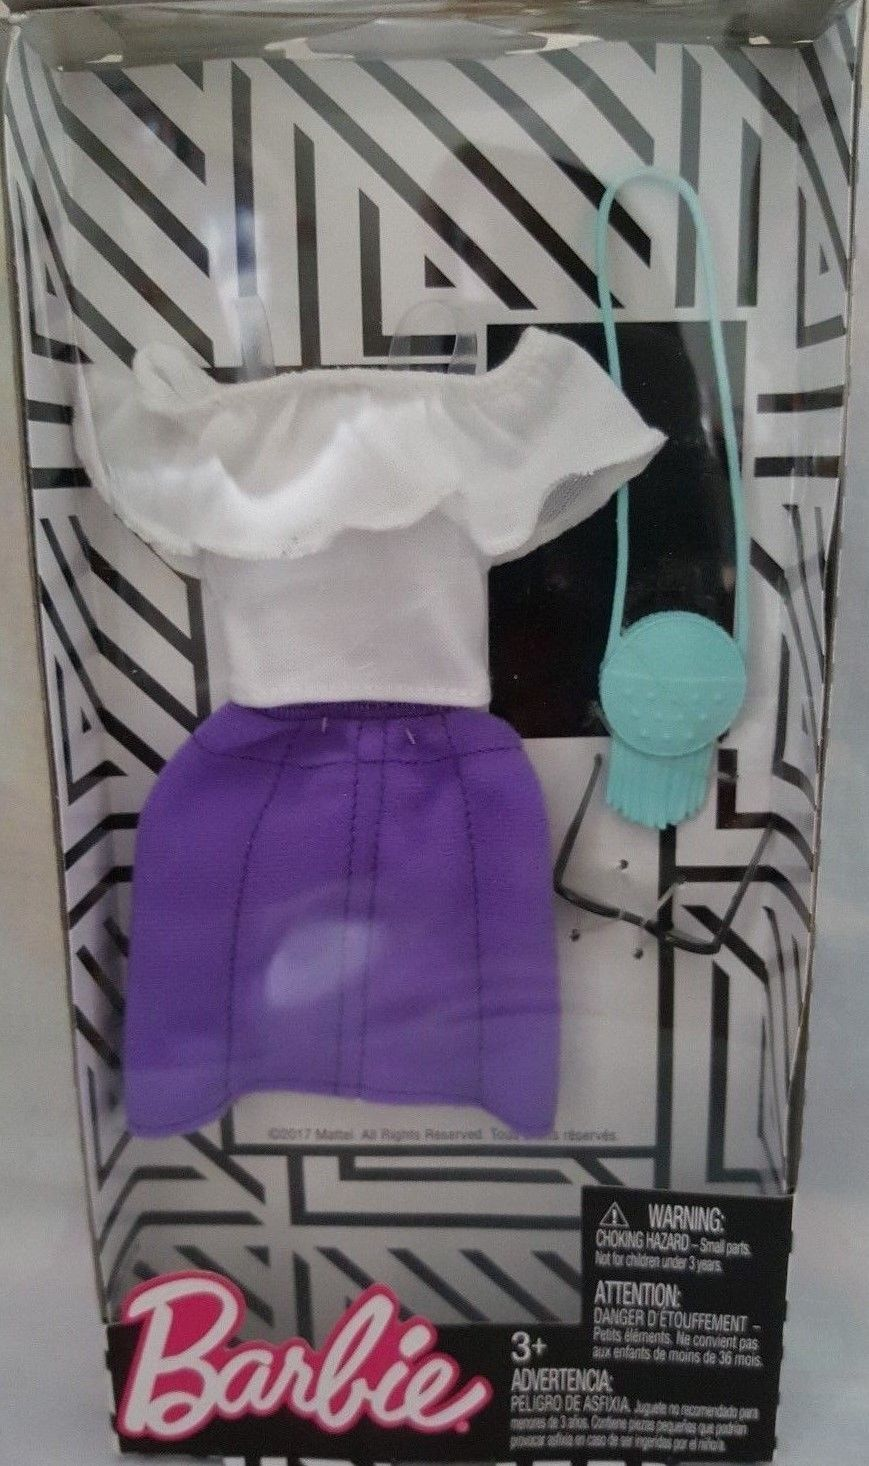 Barbie Complete Look Fashion Doll Outfit [ FND47 ] (WHITE TOP PURPLE SKIRT & Accessories [ FKT01 ])